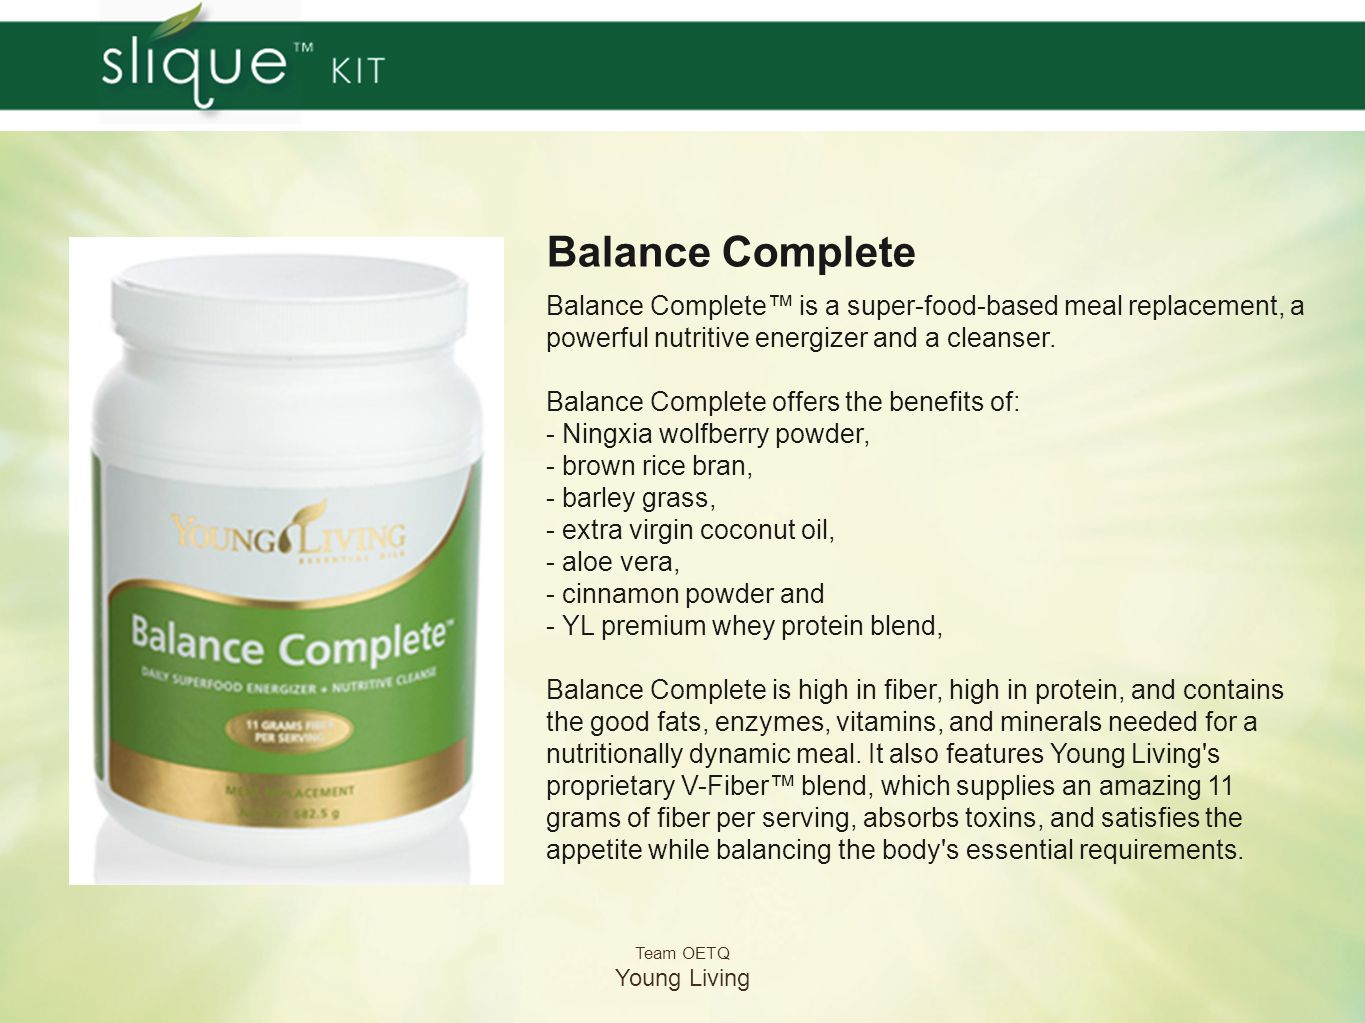 Team OETQ Young Living Balance Complete Add two scoops of Balance Complete to 8-10 ounces of cold water or the milk of your choice.